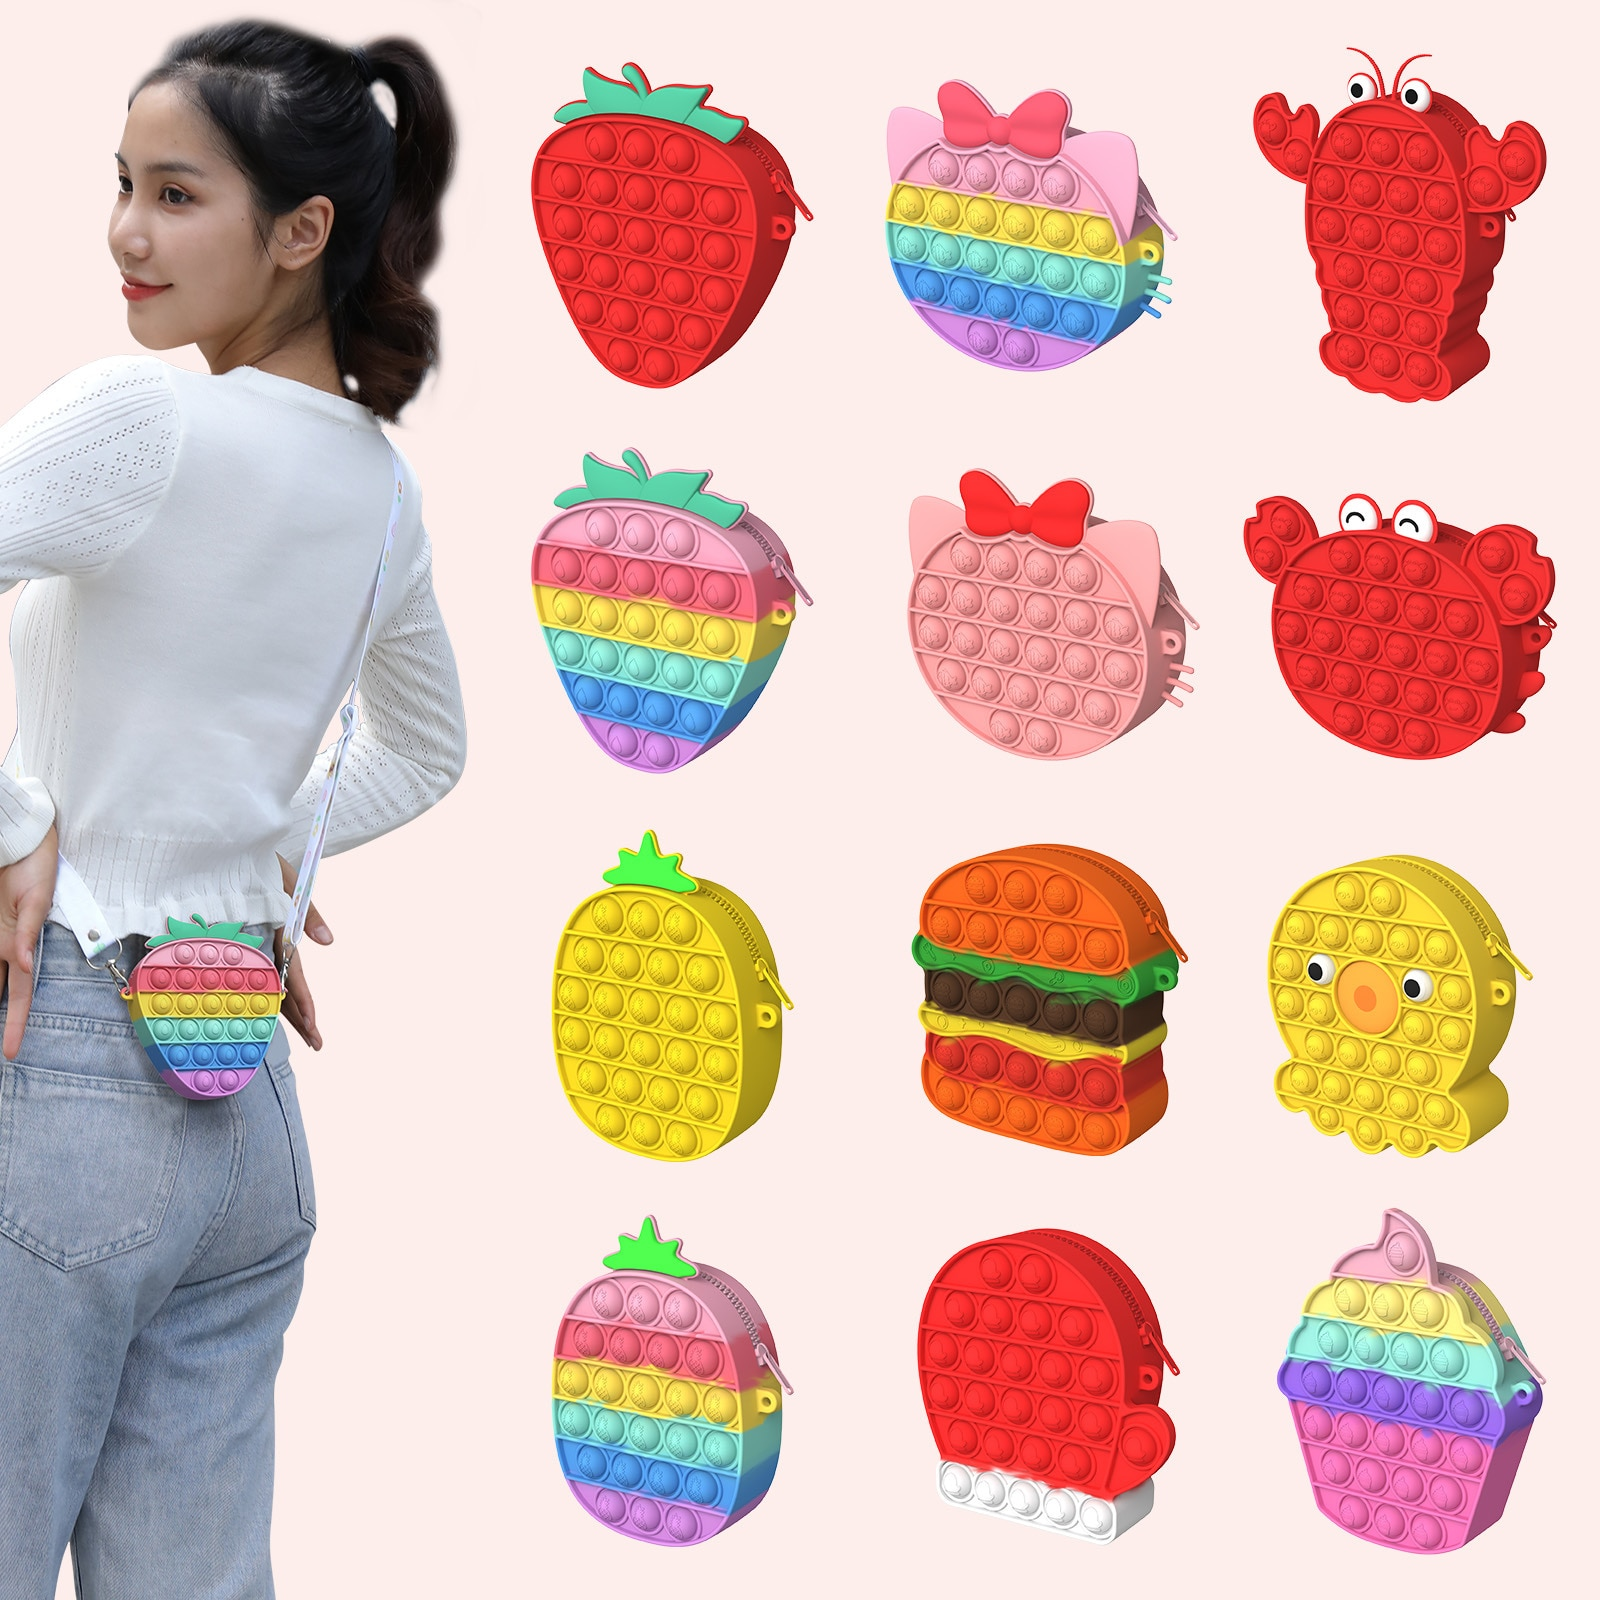 Macaron Bag Push Bubble Bag Silicone Reliver Puzzle Relaxing key Ring Bag Sensory Squeeze Girl Gift Antistress Decompression Toy